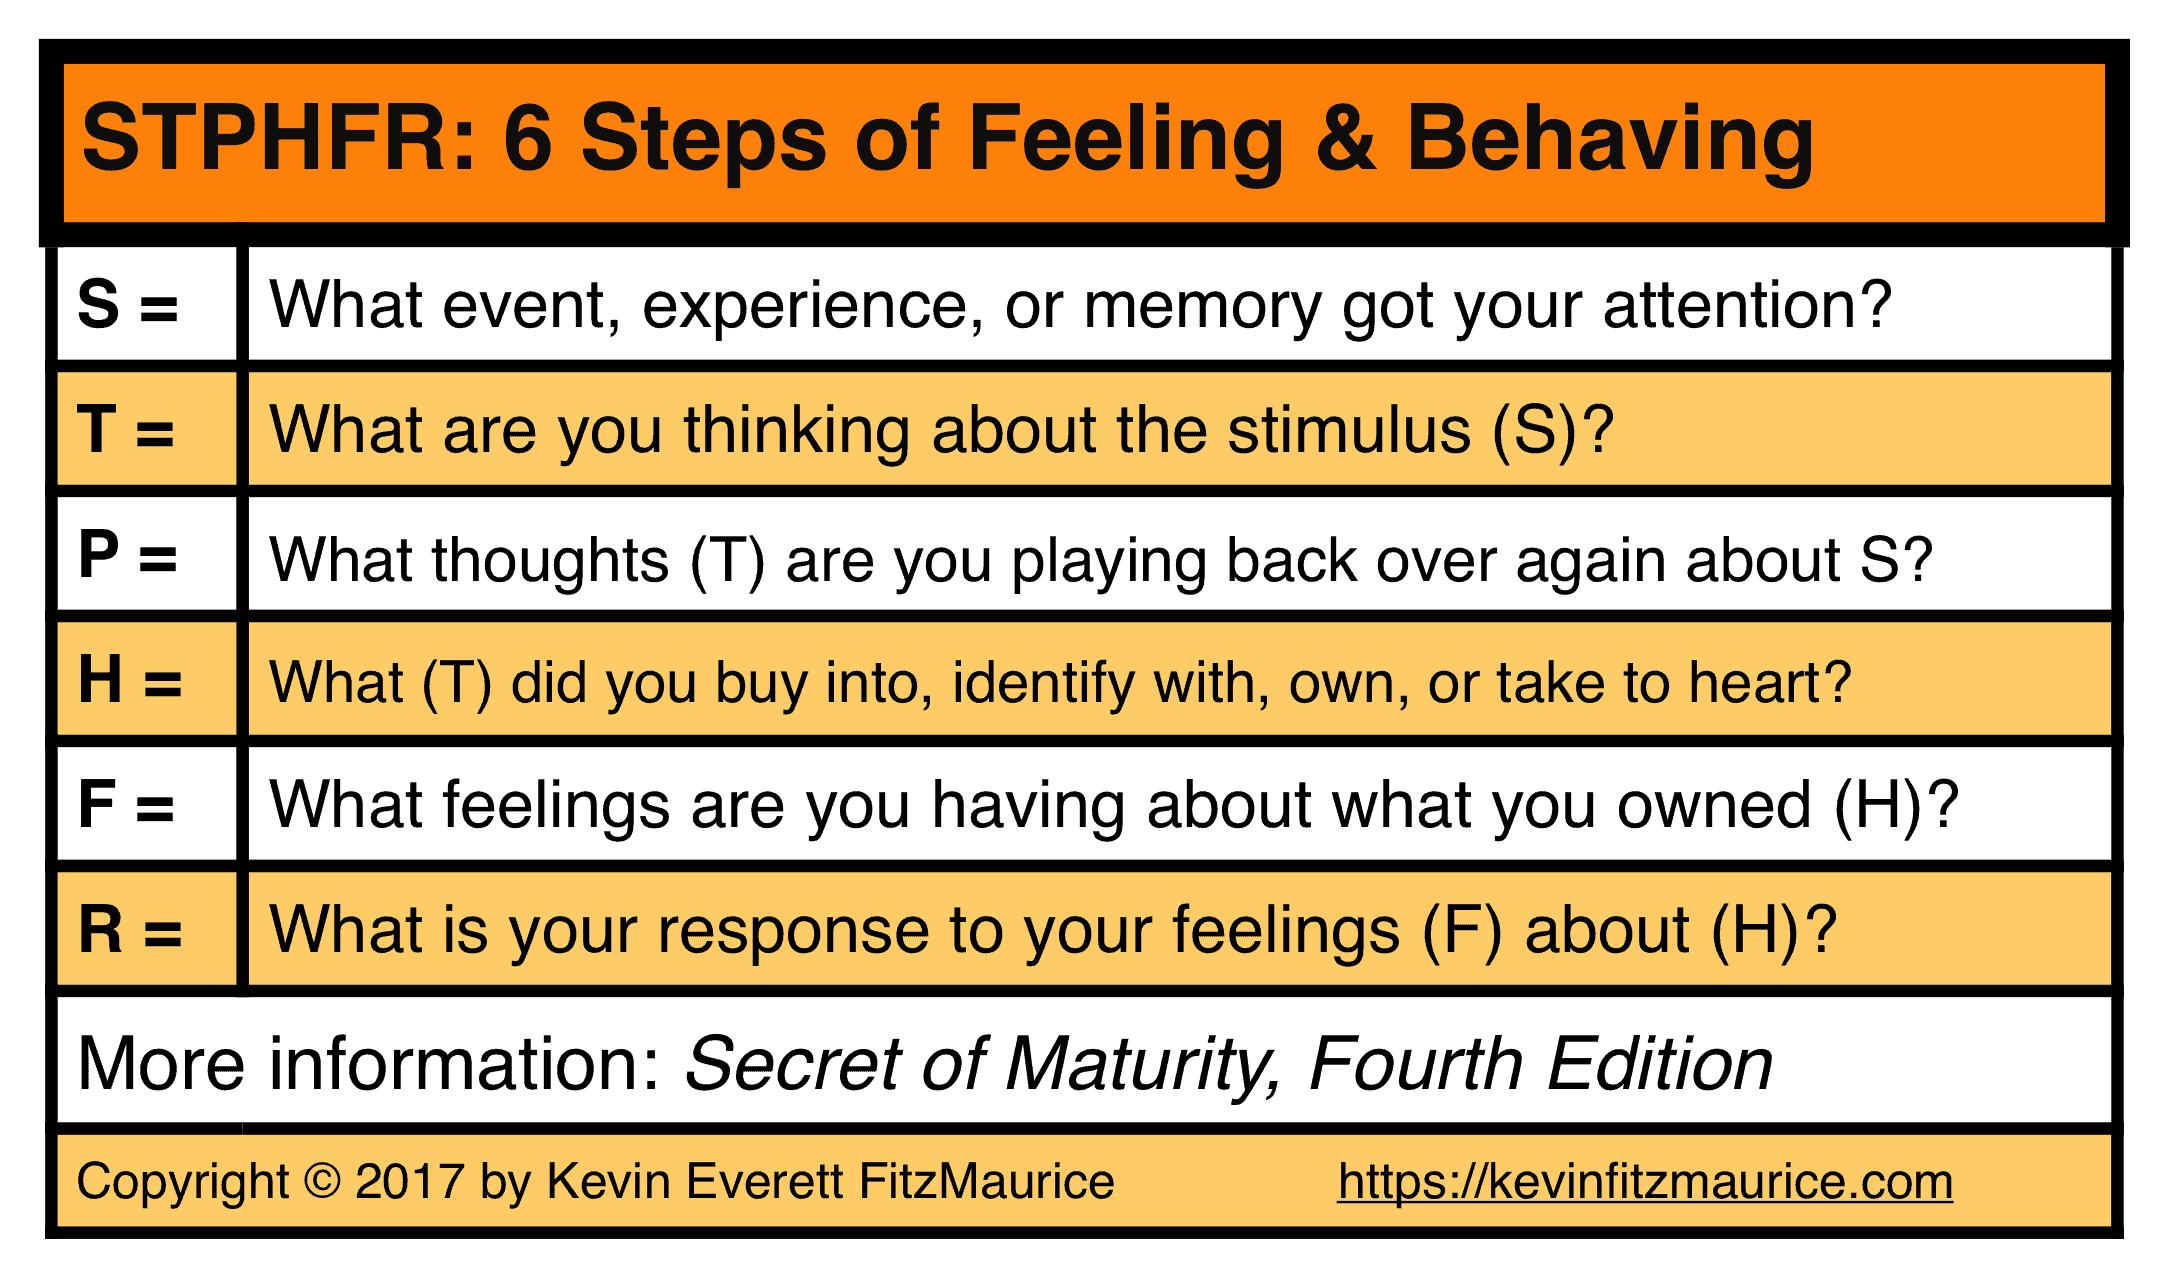 STPHFR 6 Steps for Feelings